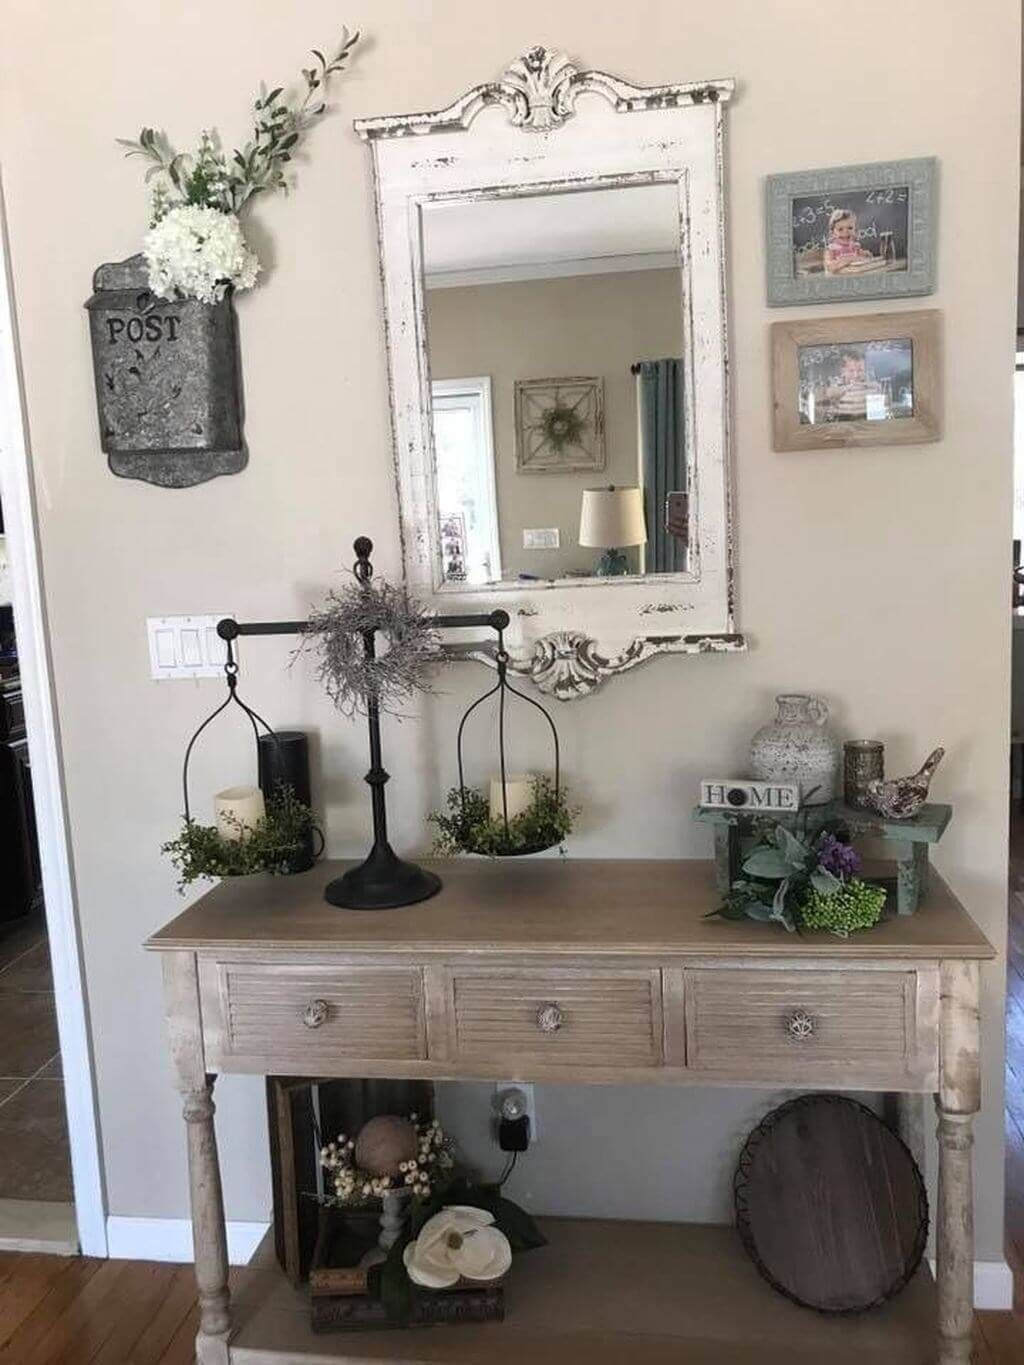 Graceful Distressed Mirror over an Entry Table